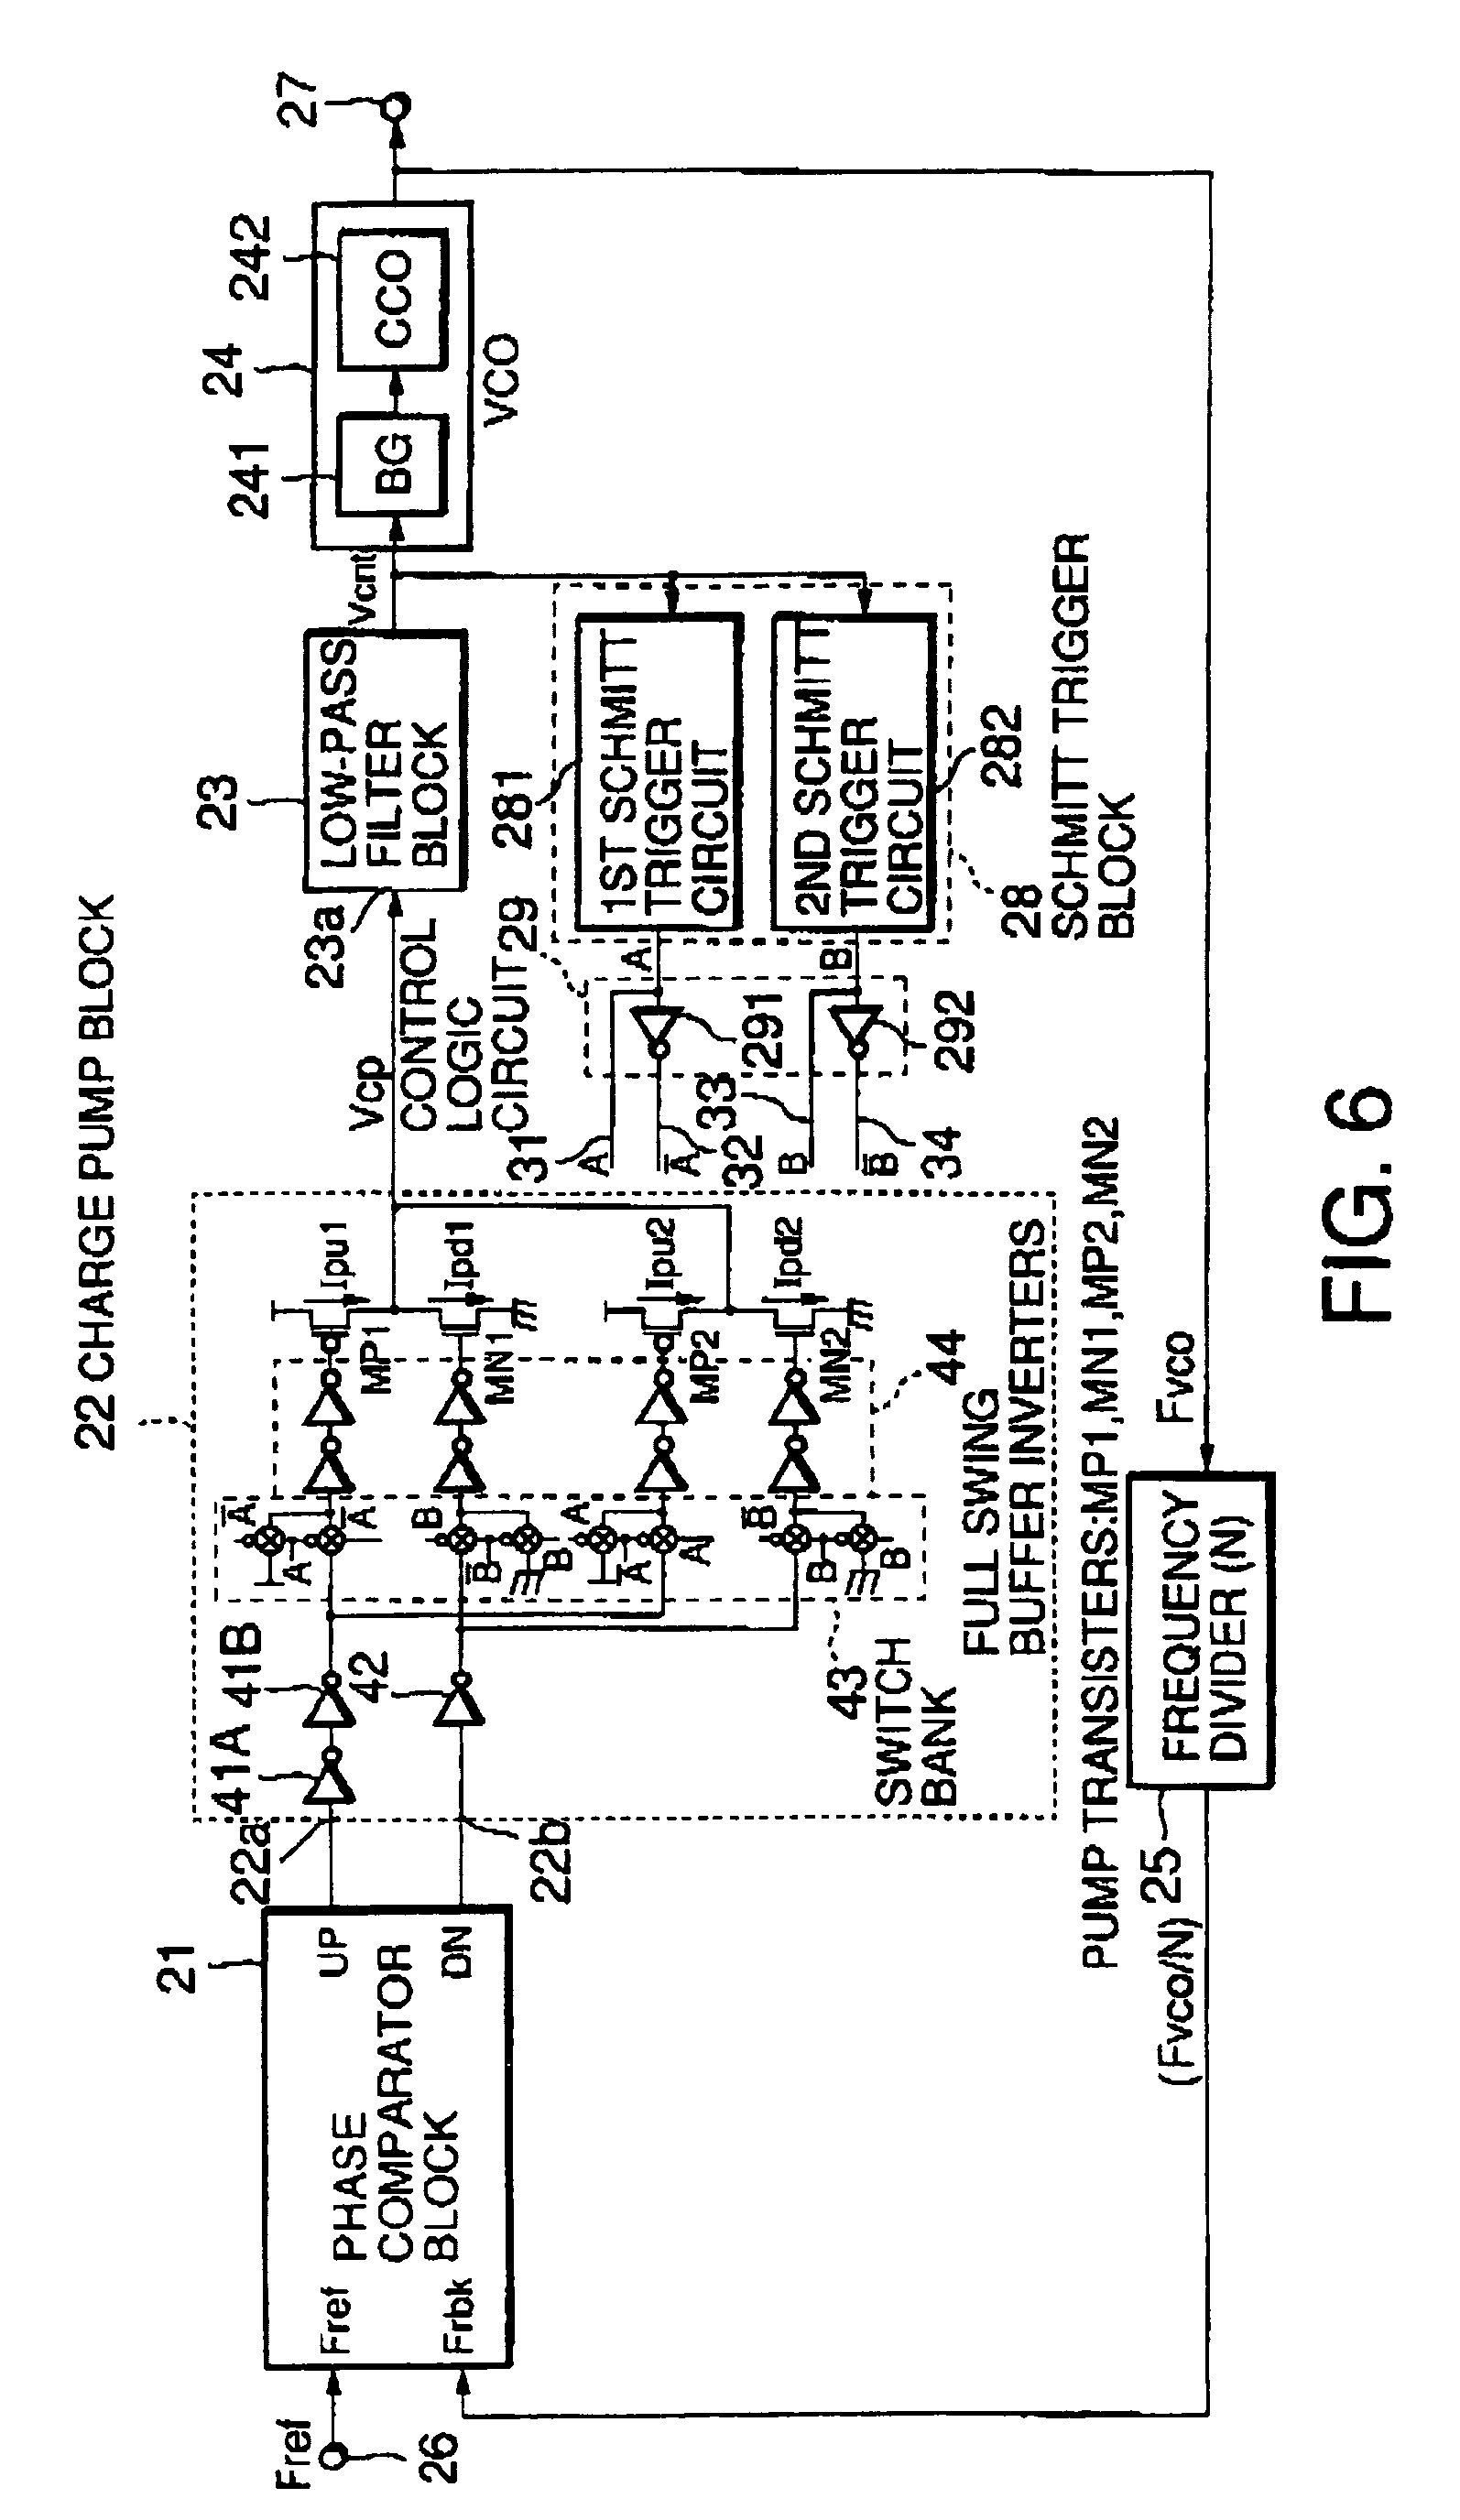 patent ep0881774b1 - phase locked loop using a schmitt trigger block